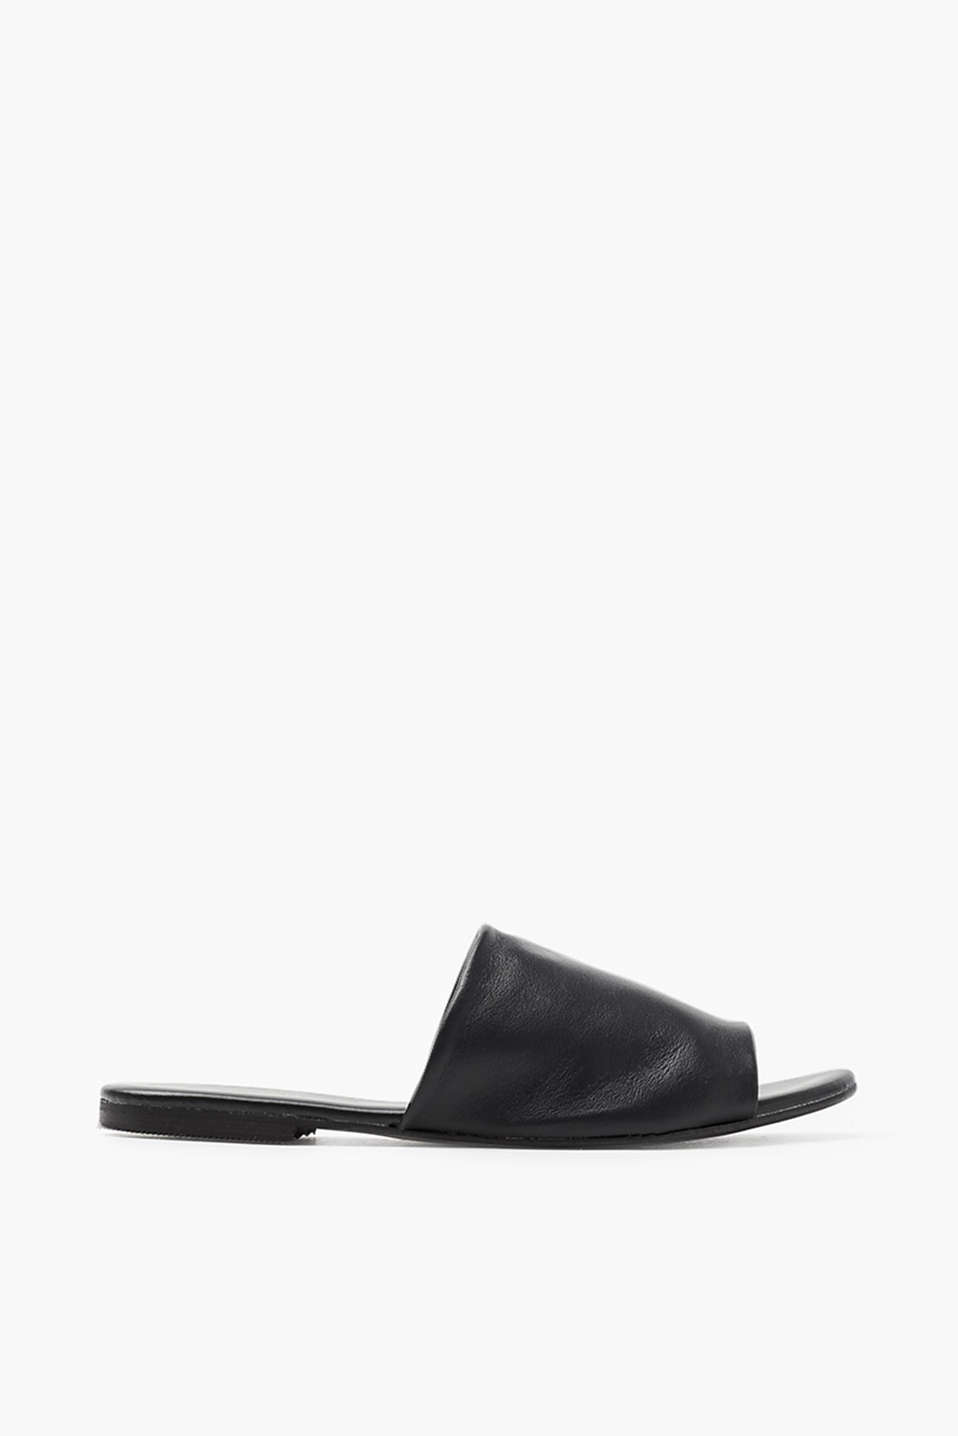 Soft nappa leather slip-ons in an open design